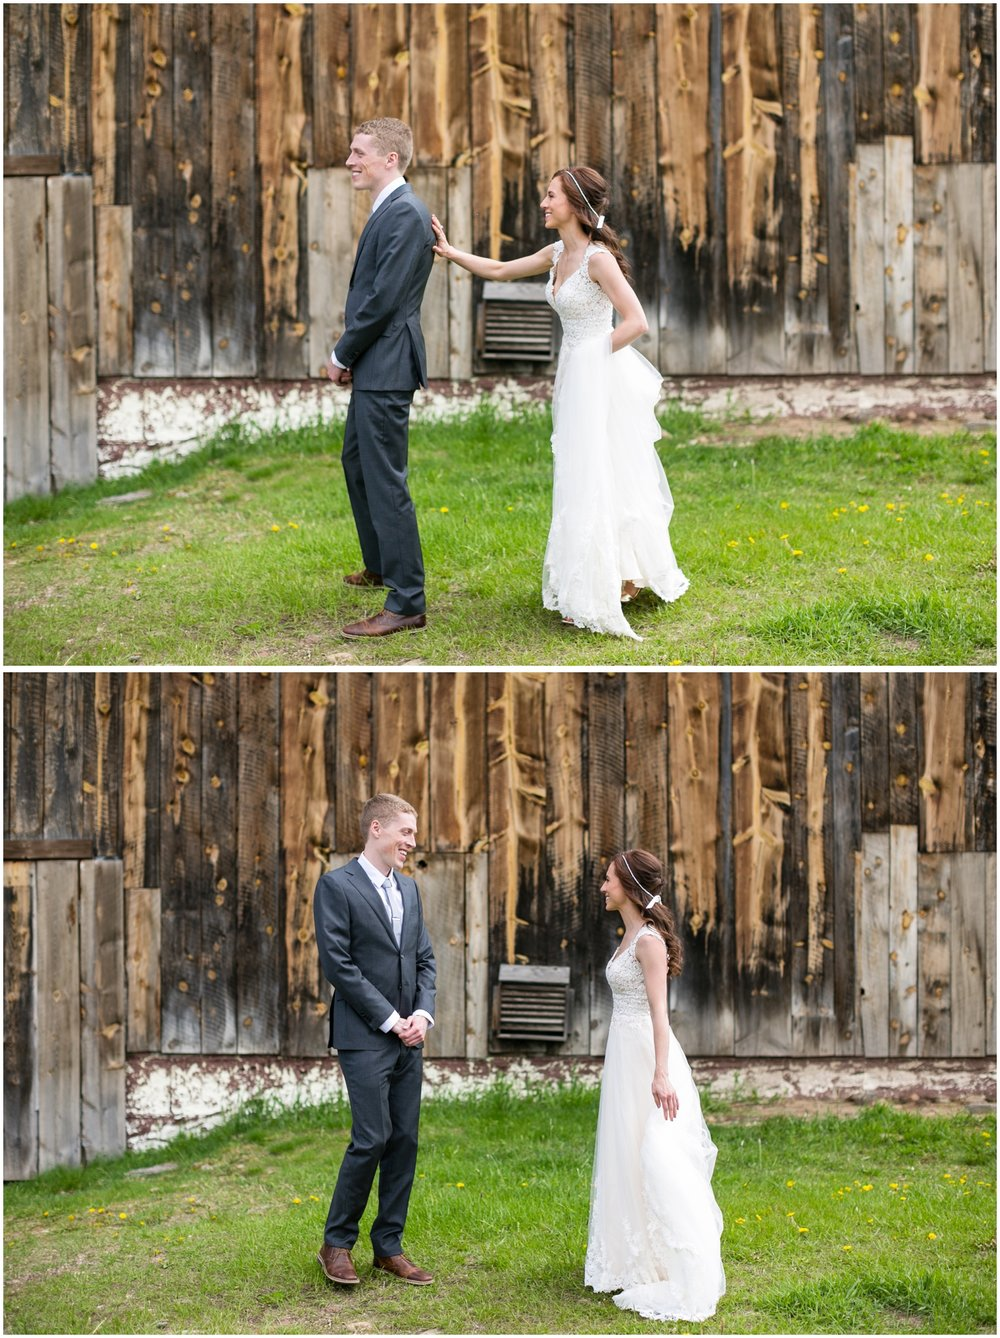 Evergreen_Lake_house_Wedding_Photographer_First_Look.JPG